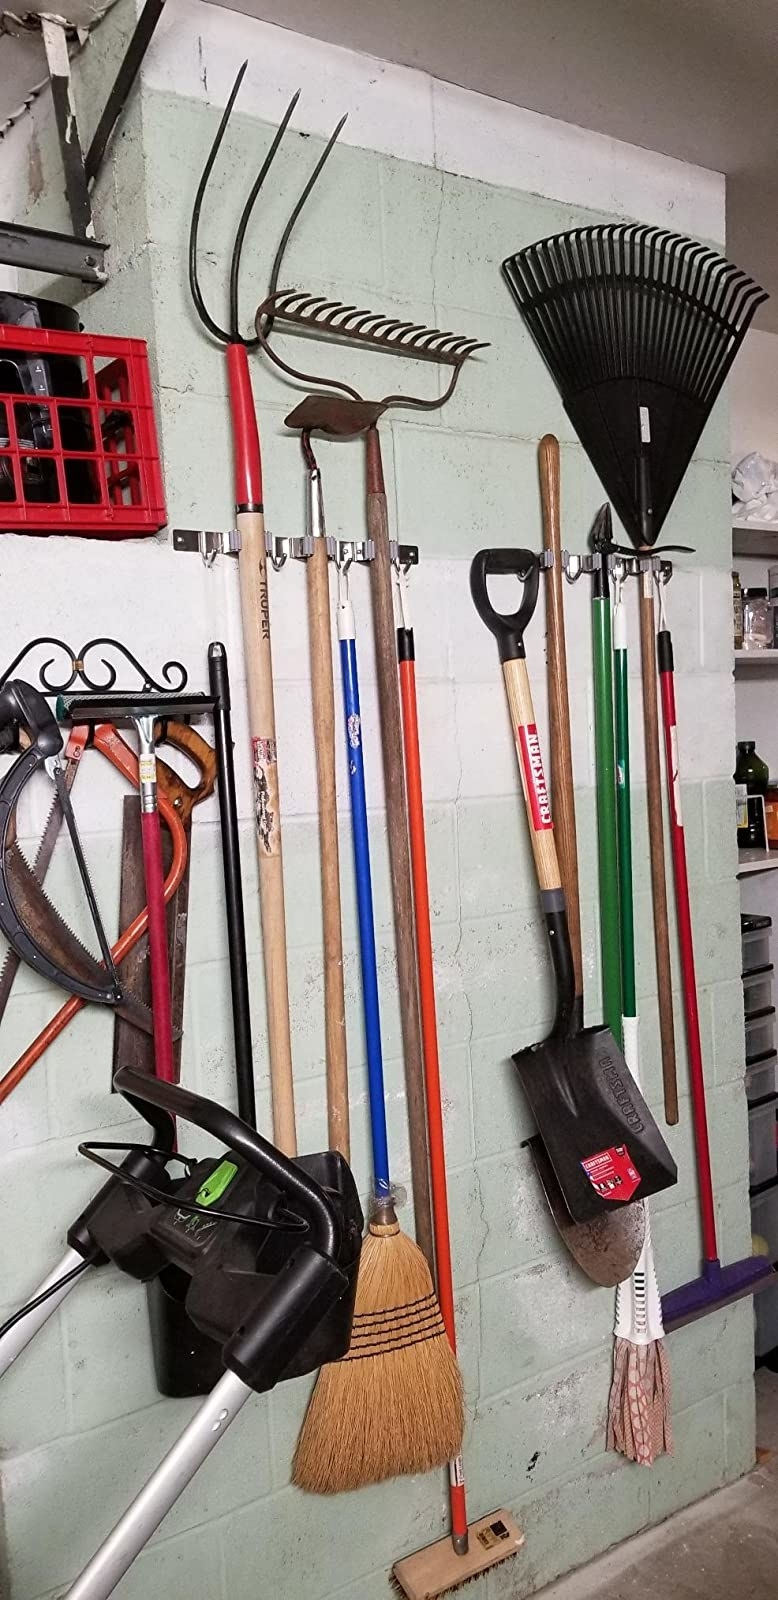 reviewer image of the hooks holding garden tools